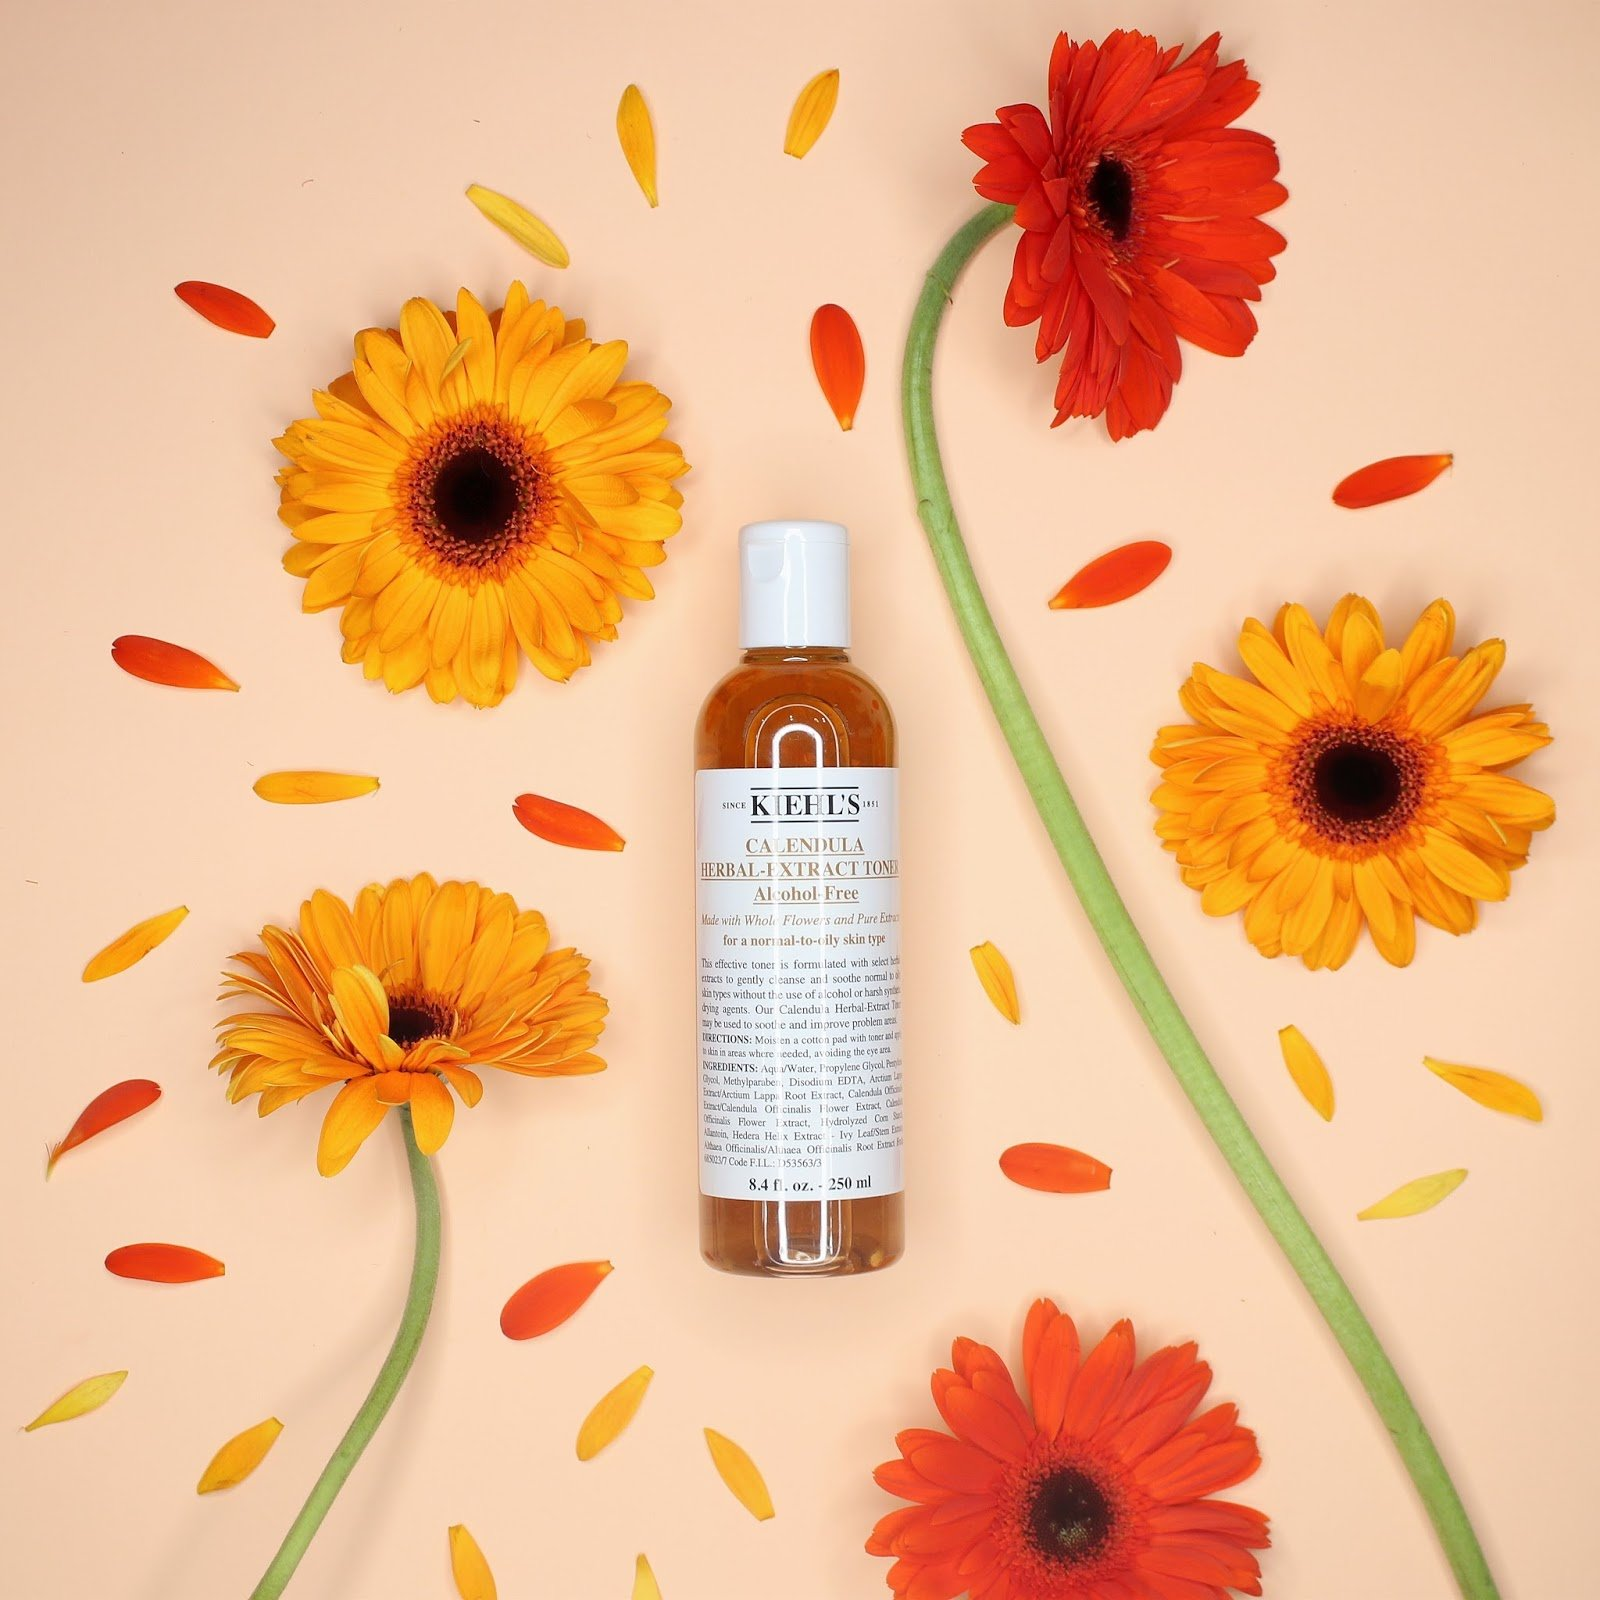 toner cho da dầu Kiehl's Calendula Herbal Extract Alcohol Free